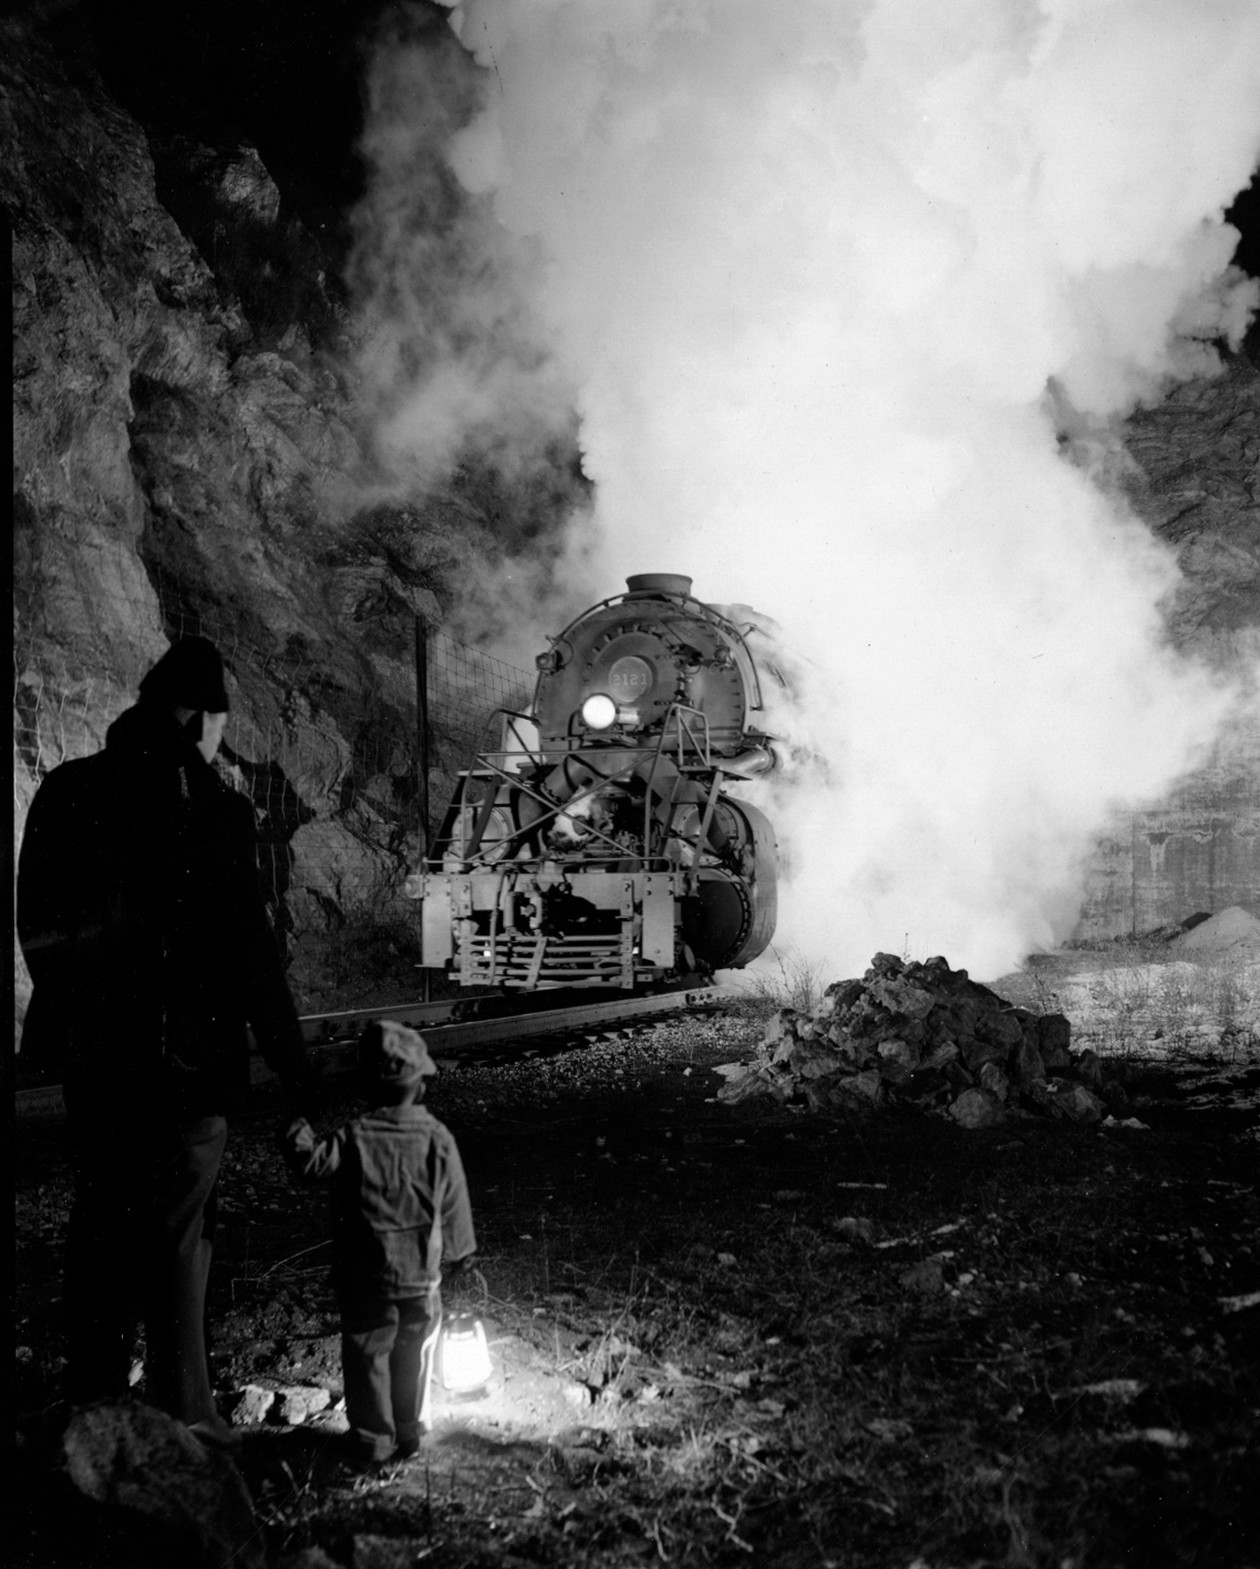 Untitled (man and child watching train) (1955) by O. Winston Link